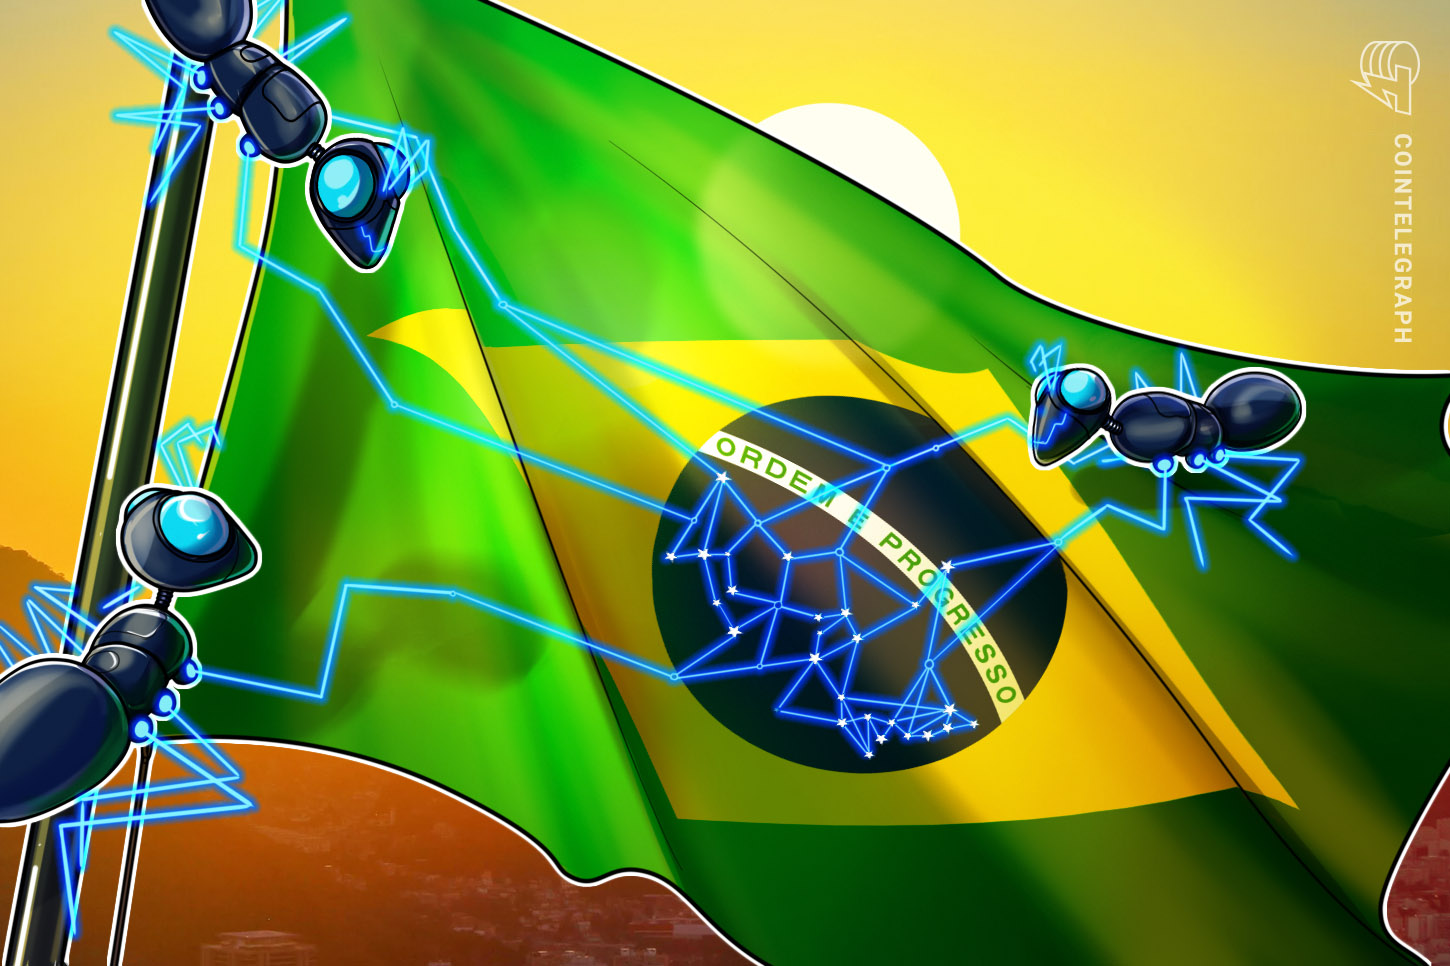 Blockchain as One of the Goals of Digital Government Strategy in Brazil - RapidAPI